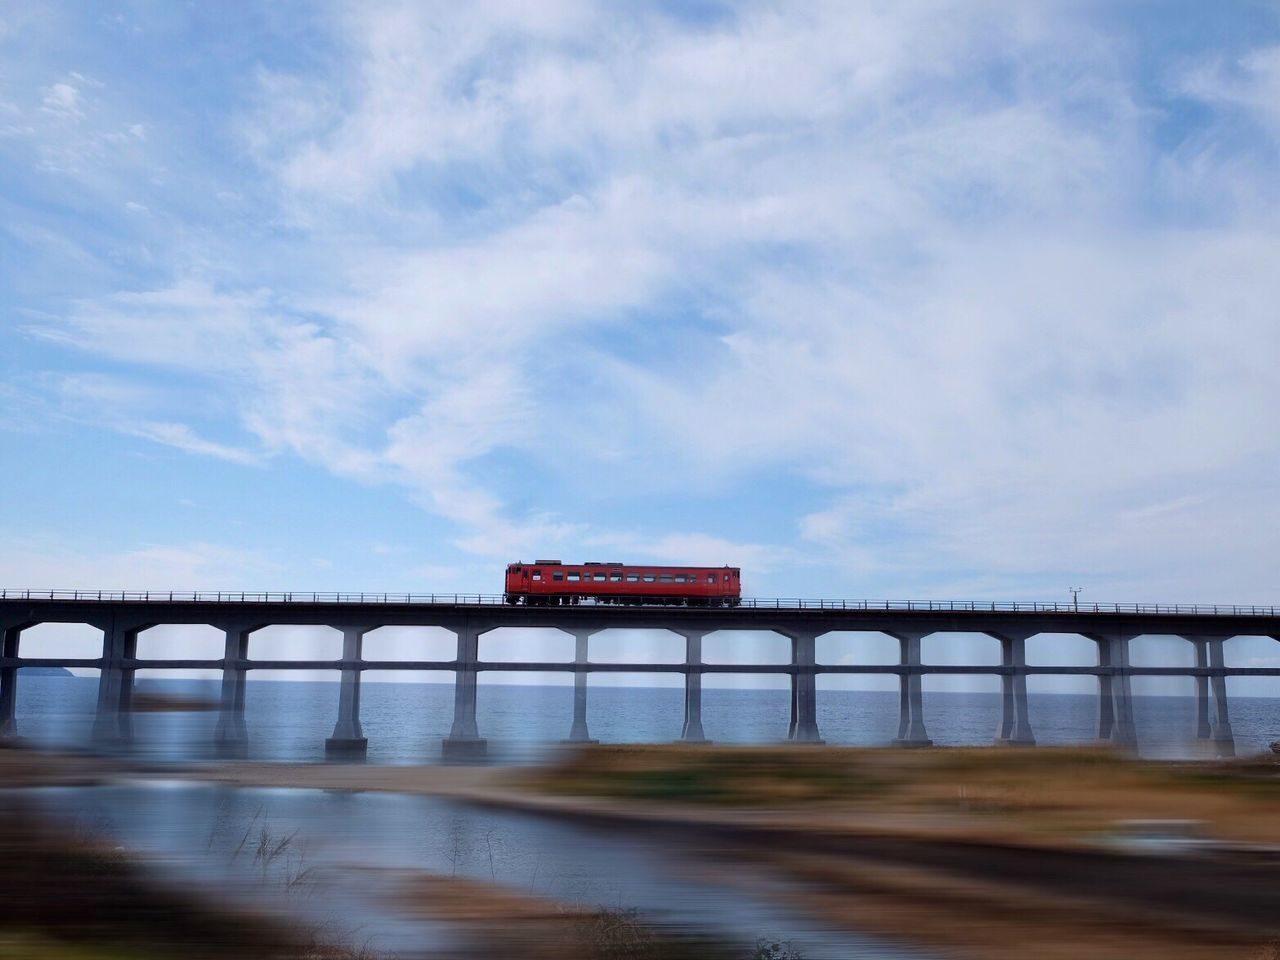 No People Cloud - Sky Japan Photography FUJIFILM X-T1 Beauty In Nature Outdoors Train